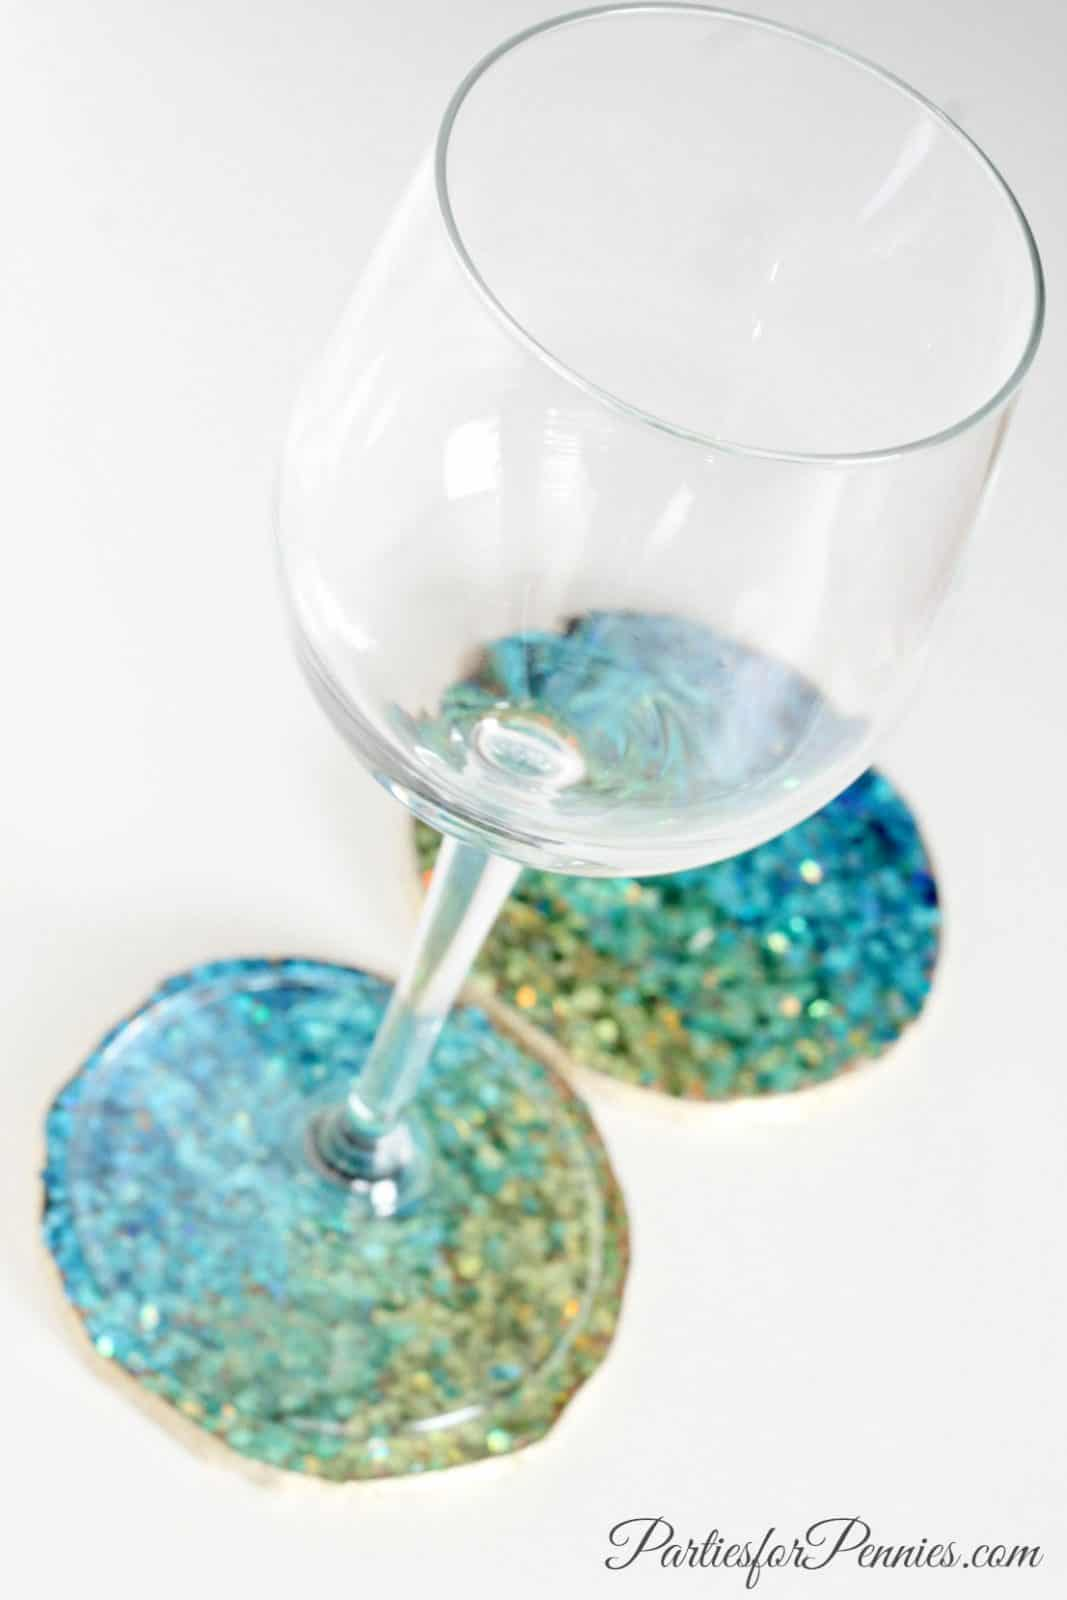 Kate Spade Inspired Coasters